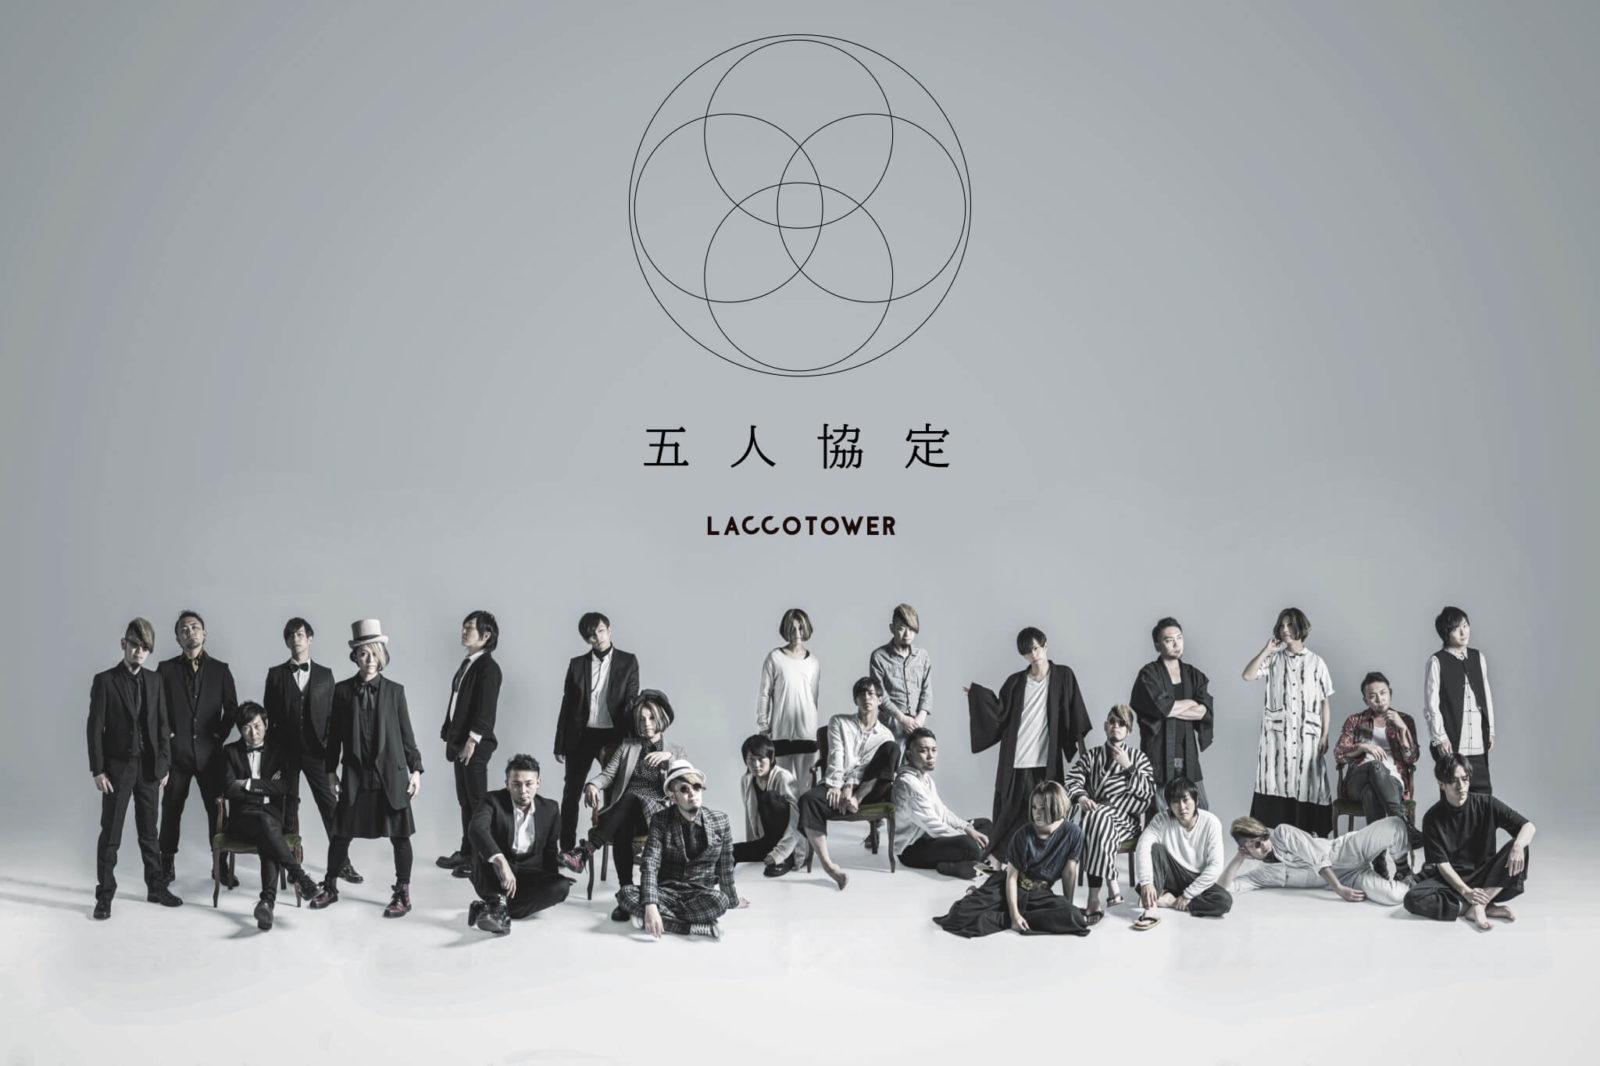 LACCO TOWER、新曲「閃光」が2020ザスパクサツ群馬公式応援ソングに決定サムネイル画像!